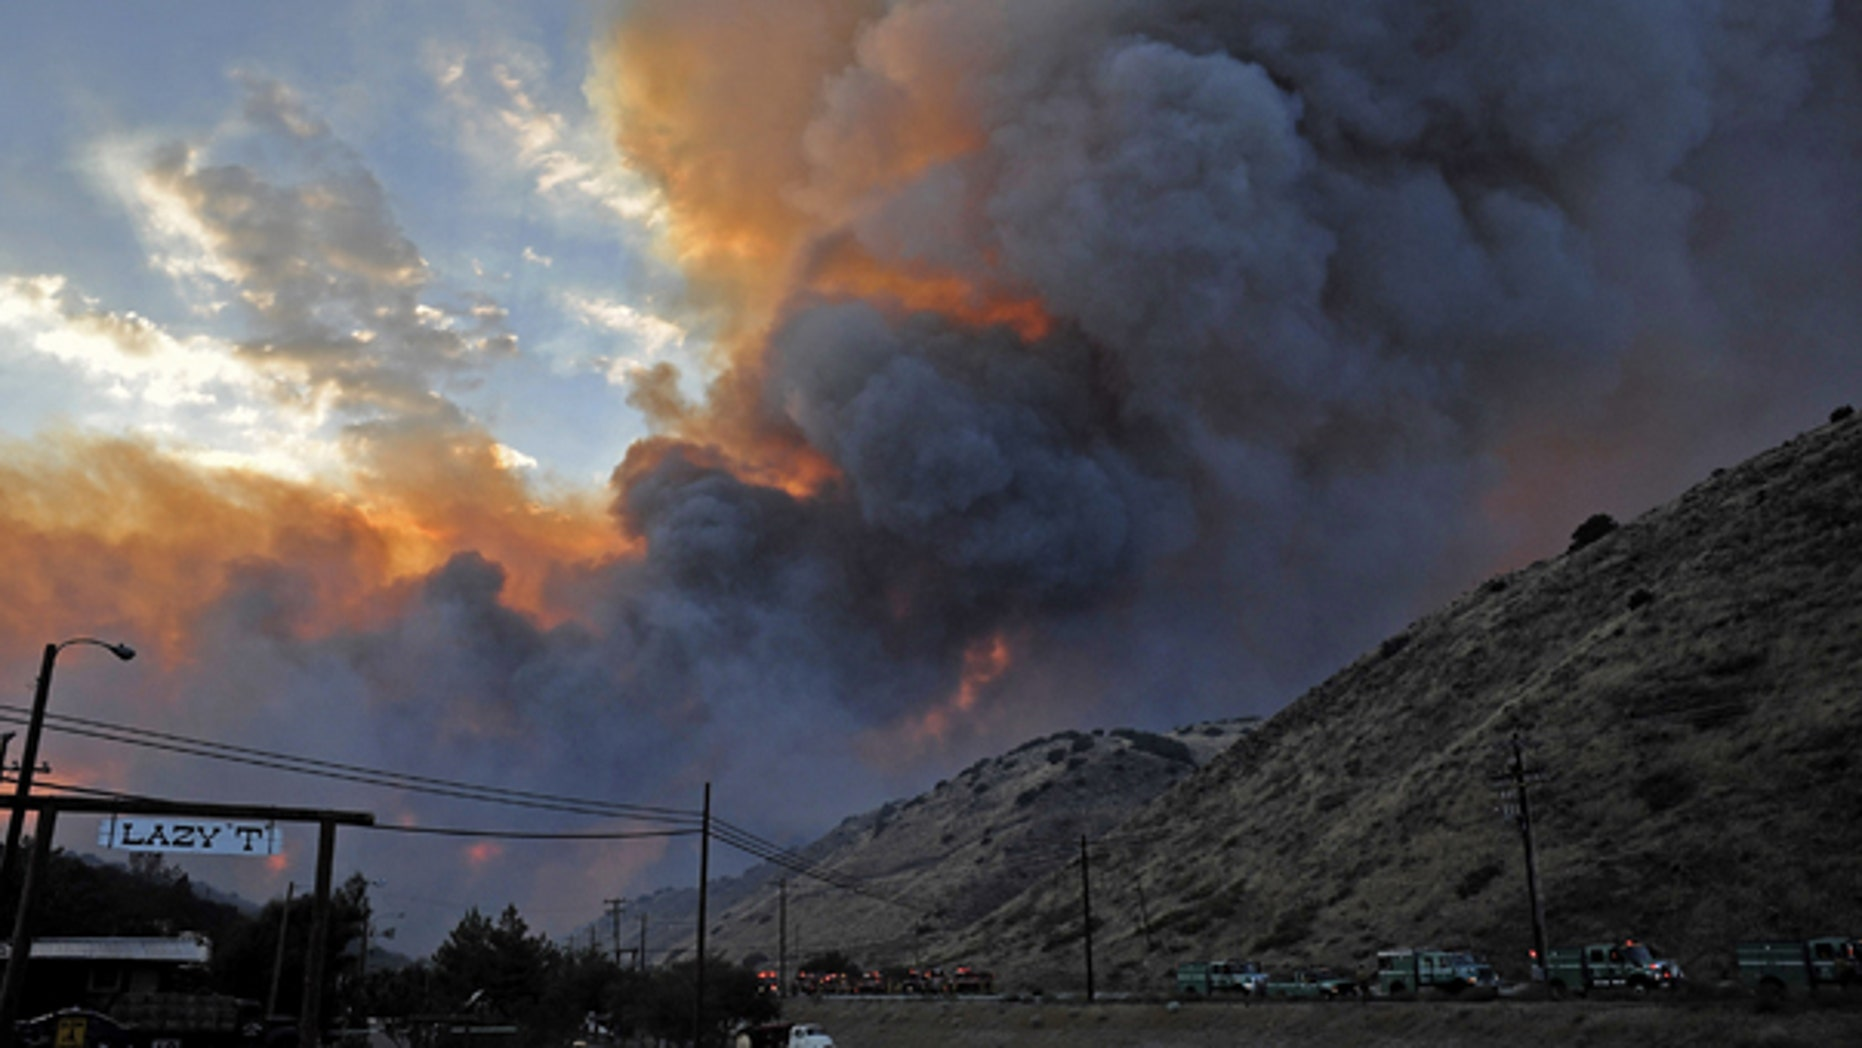 July 29: A fast moving wildfire burns above Elizabeth Lake Road in Leona Valley near Palmdale, Calif. Mandatory evacuations were issued for the community of Leona Valley on Thursday evening, an L.A. County fire inspector said. (AP)